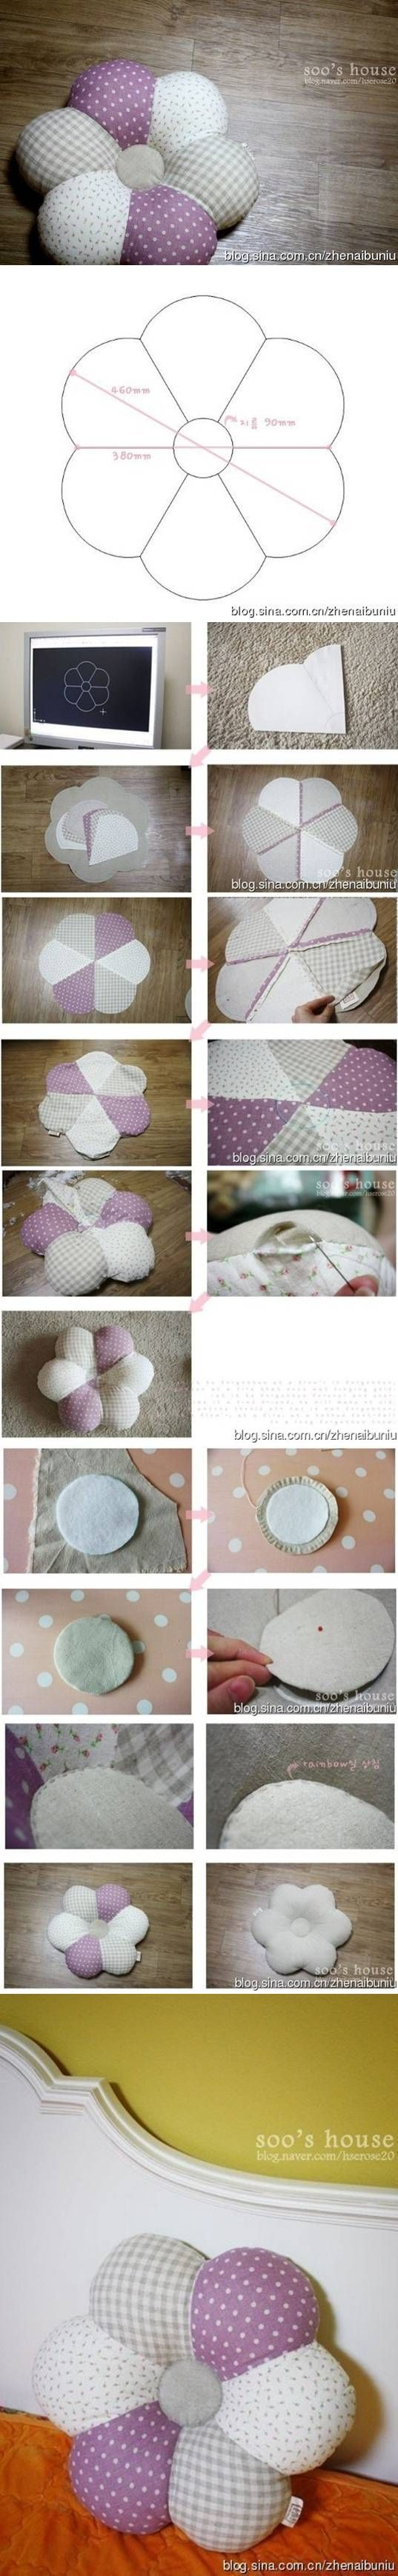 DIY-Flower-Style-Pillow